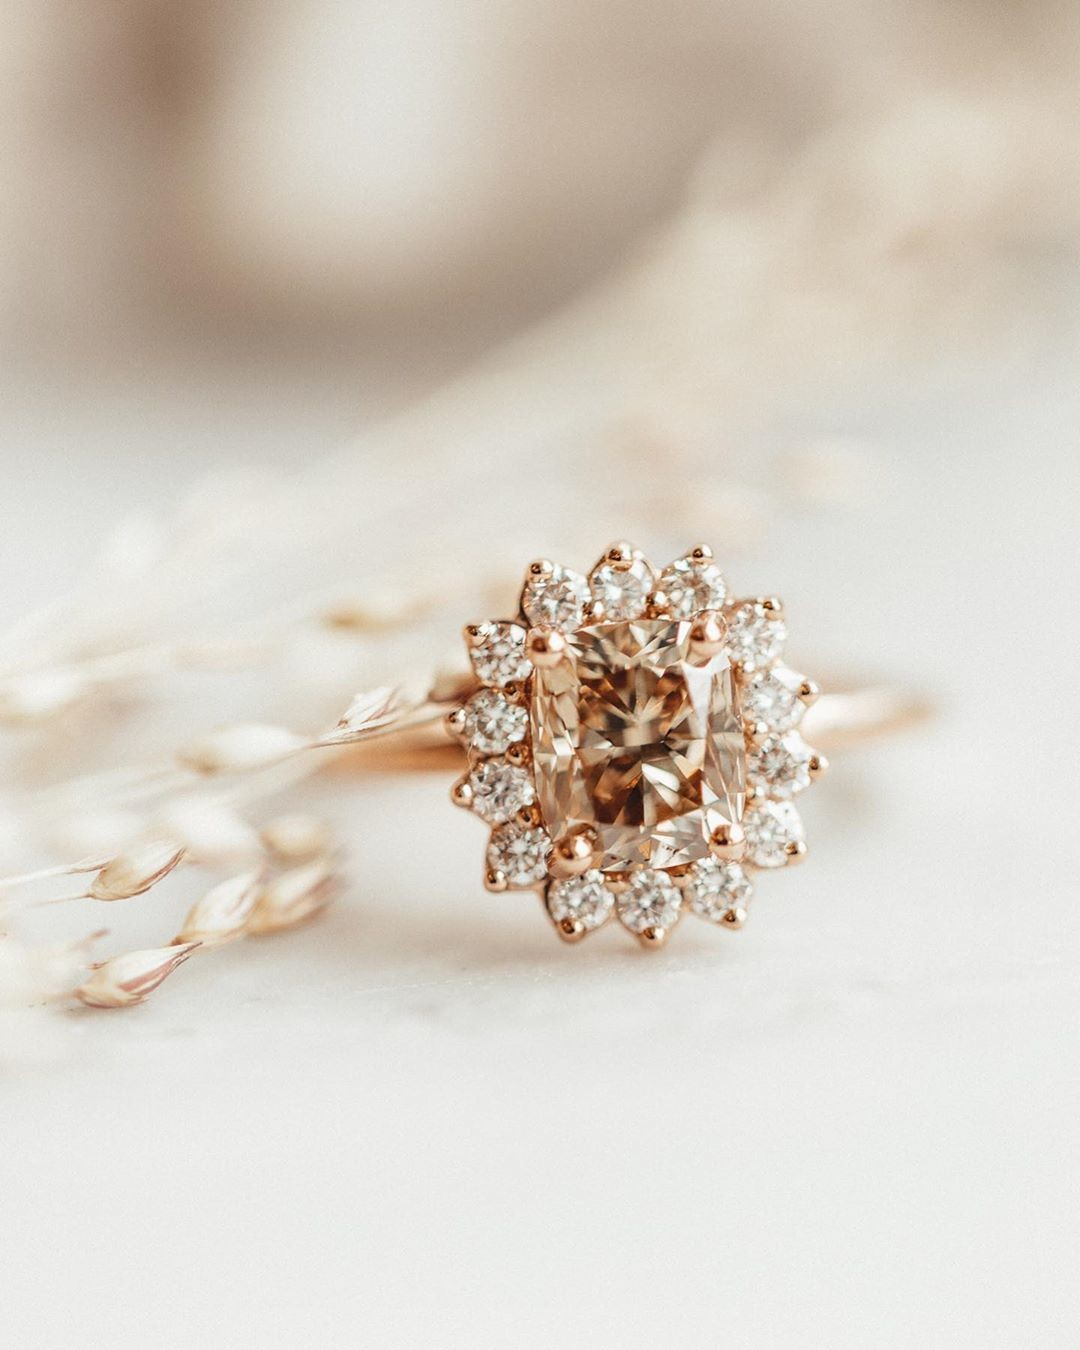 We had such a wonderful time designing this cushion cut champagne diamond ring with a starburst halo in 14k rose gold with Matthew